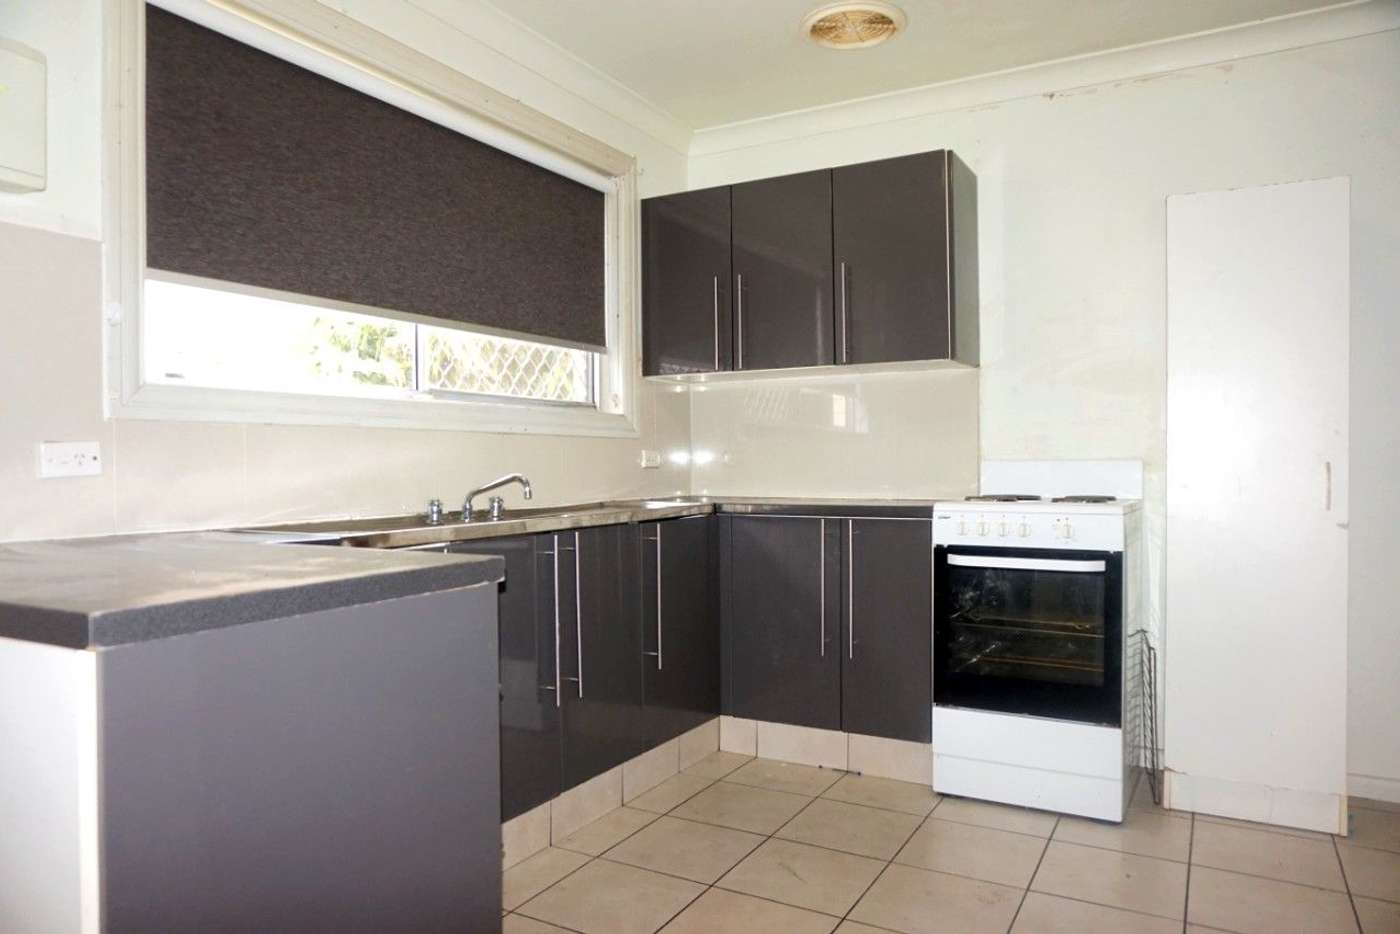 Main view of Homely townhouse listing, 11/22 North Road, Woodridge QLD 4114